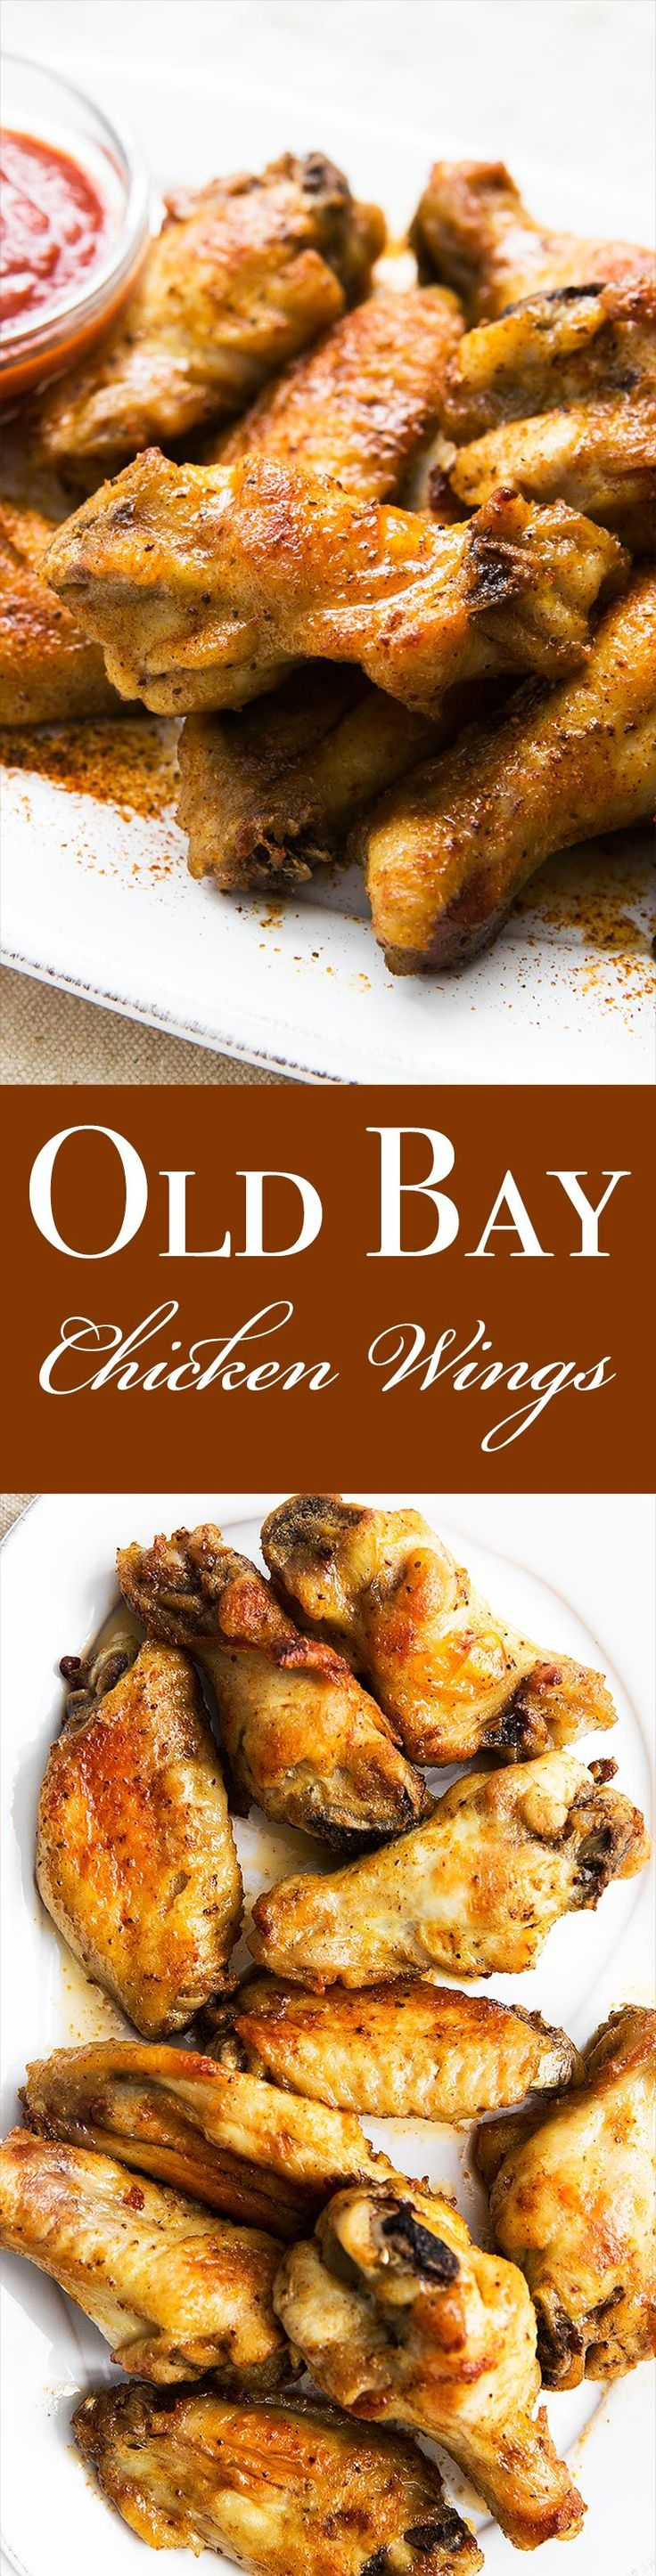 game day is just around the corner! These old bay chicken wings ...